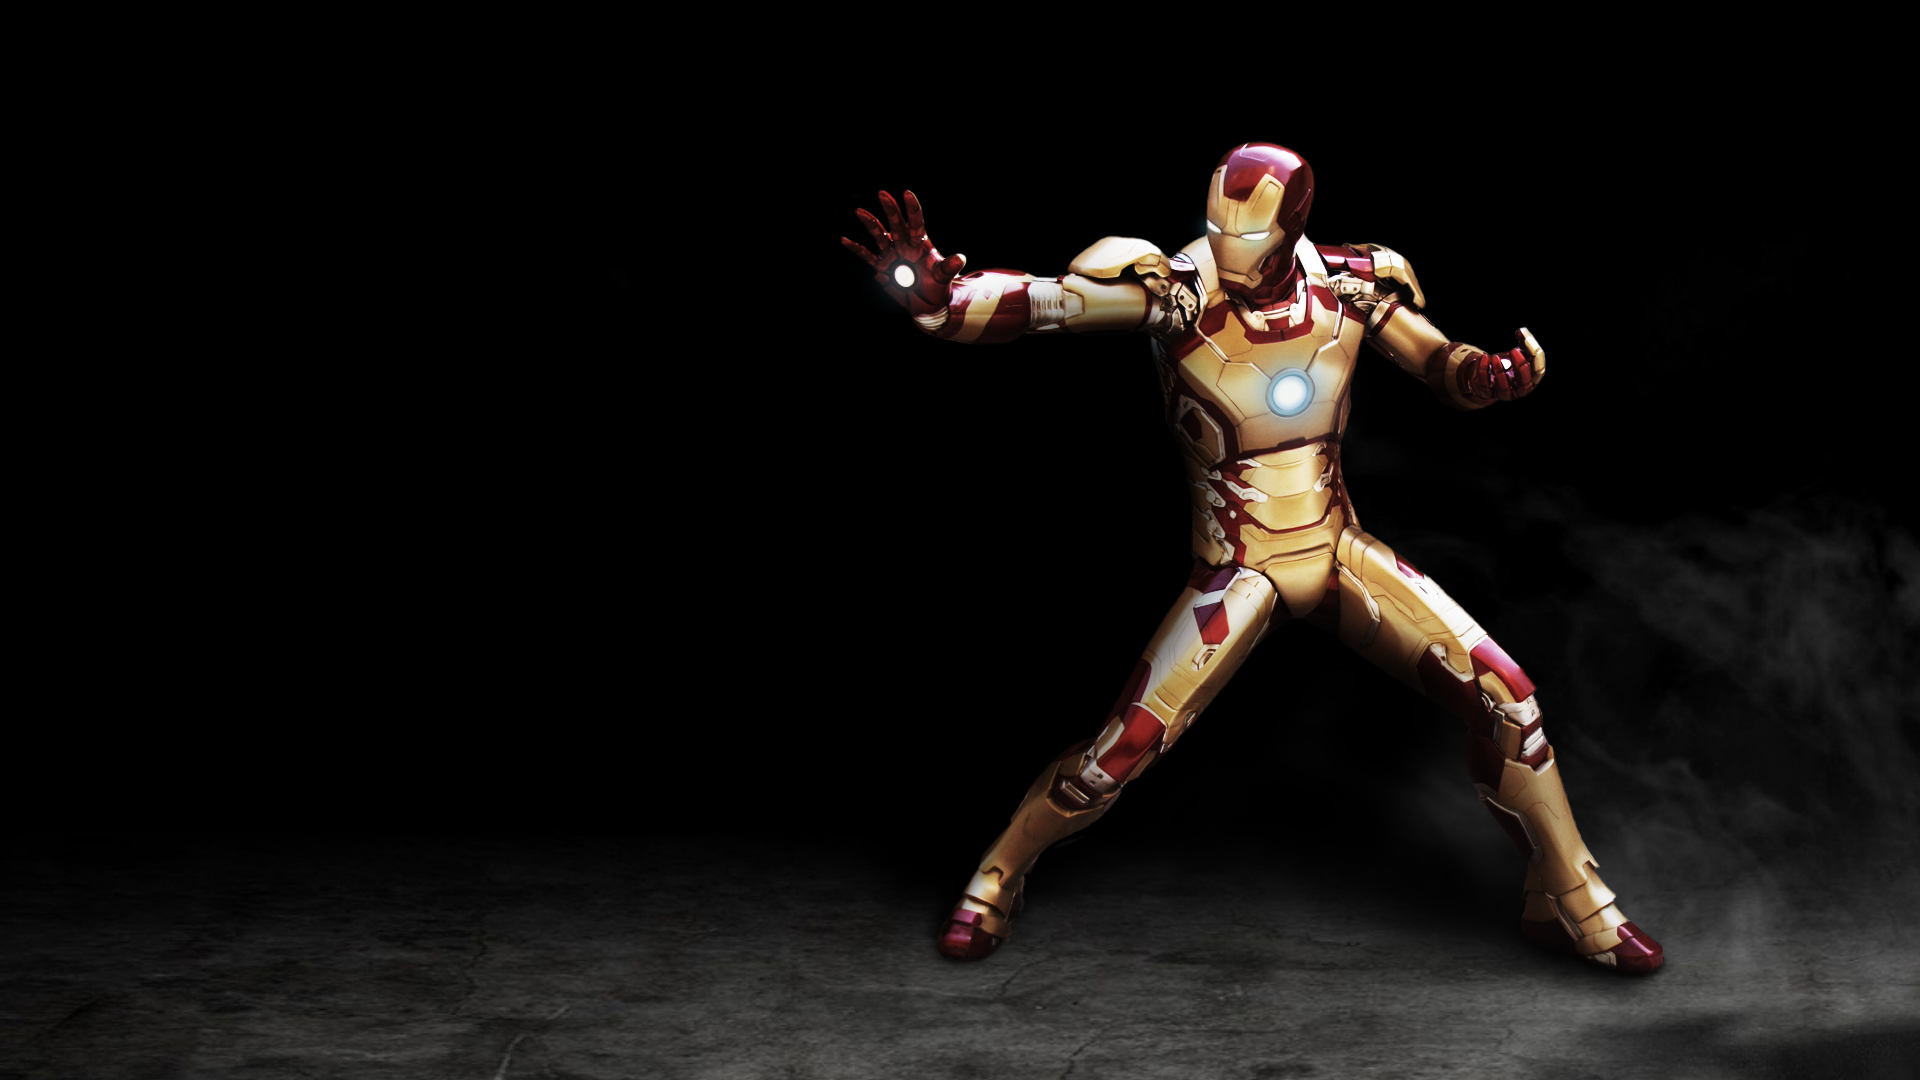 Cool Iron Man Wallpaper Best 7698 Wallpaper High Resolution 1920x1080